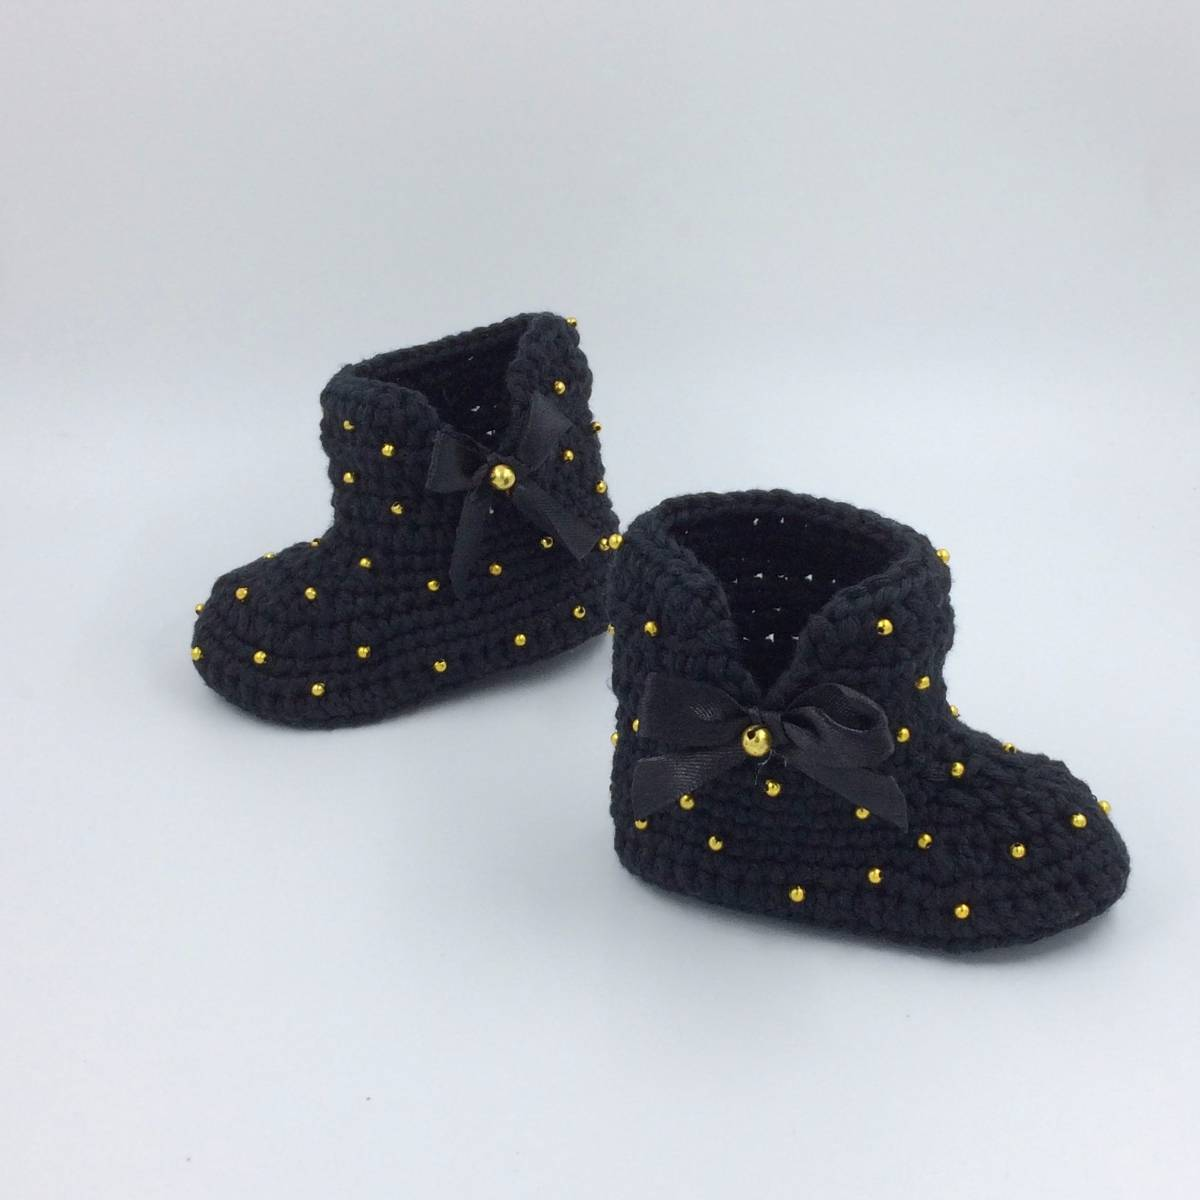 Cute Baby Boots In Black